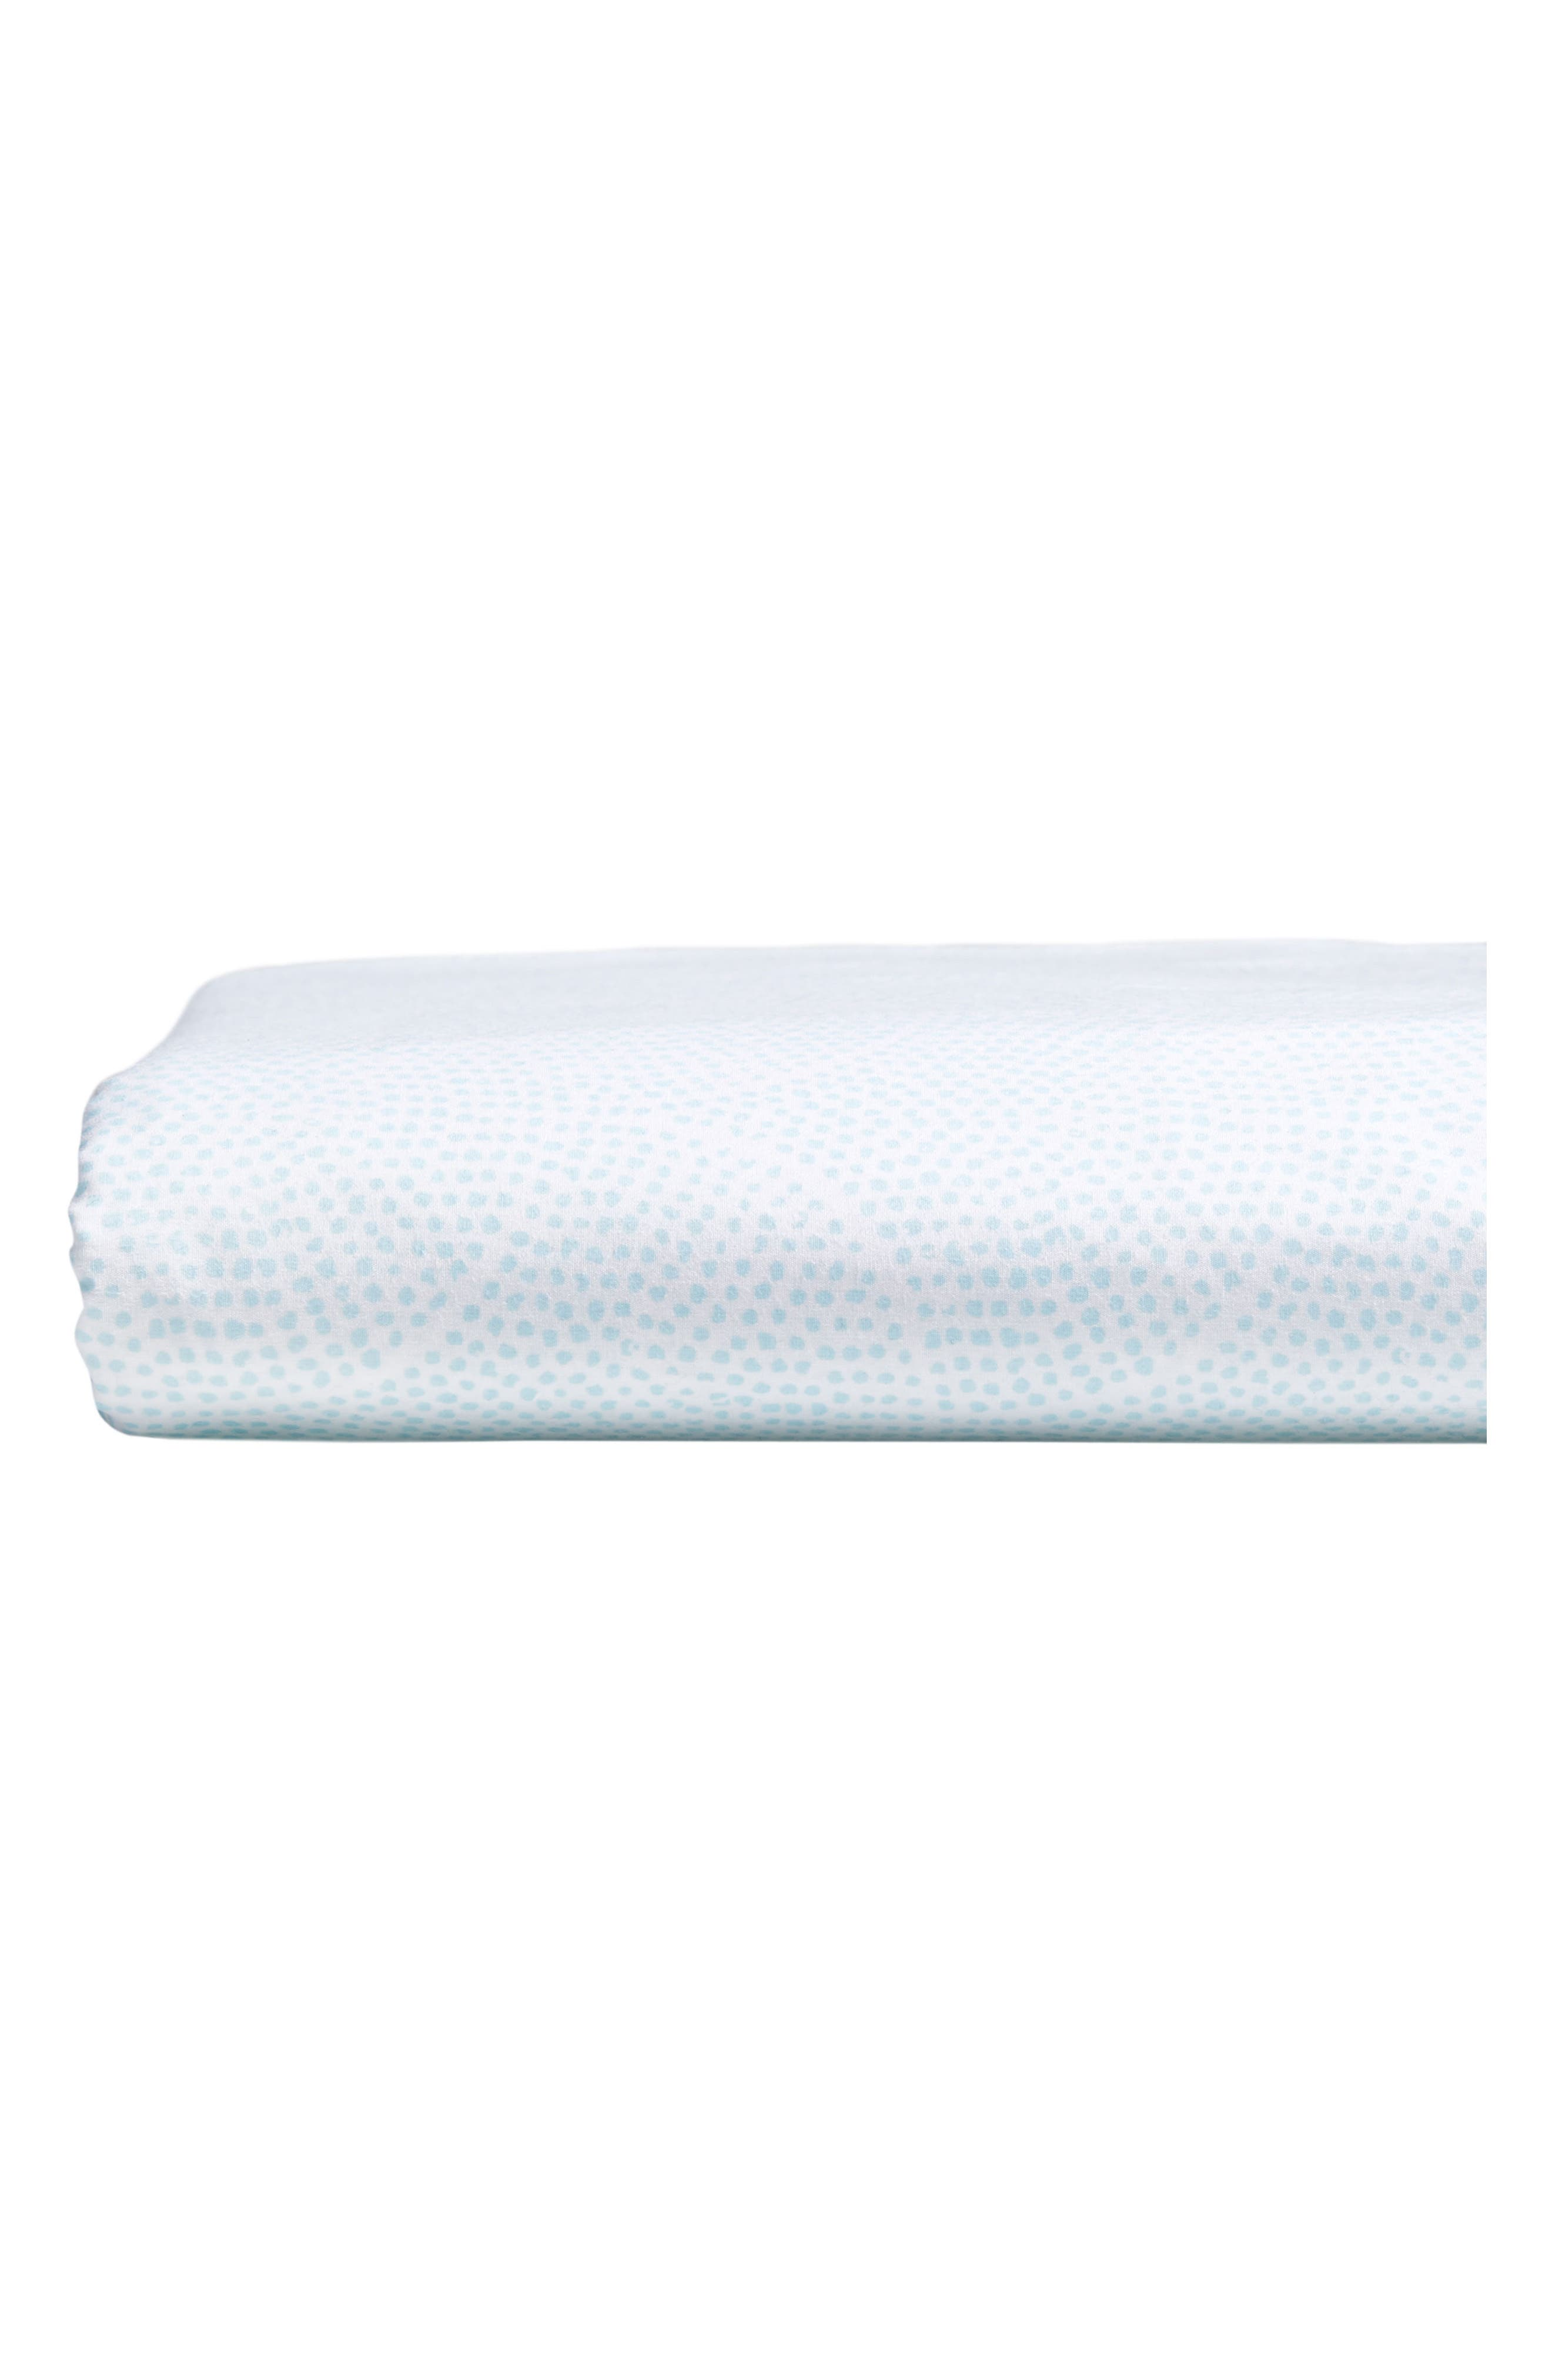 Main Image - John Robshaw Vatula 400 Thread Count Fitted Sheet